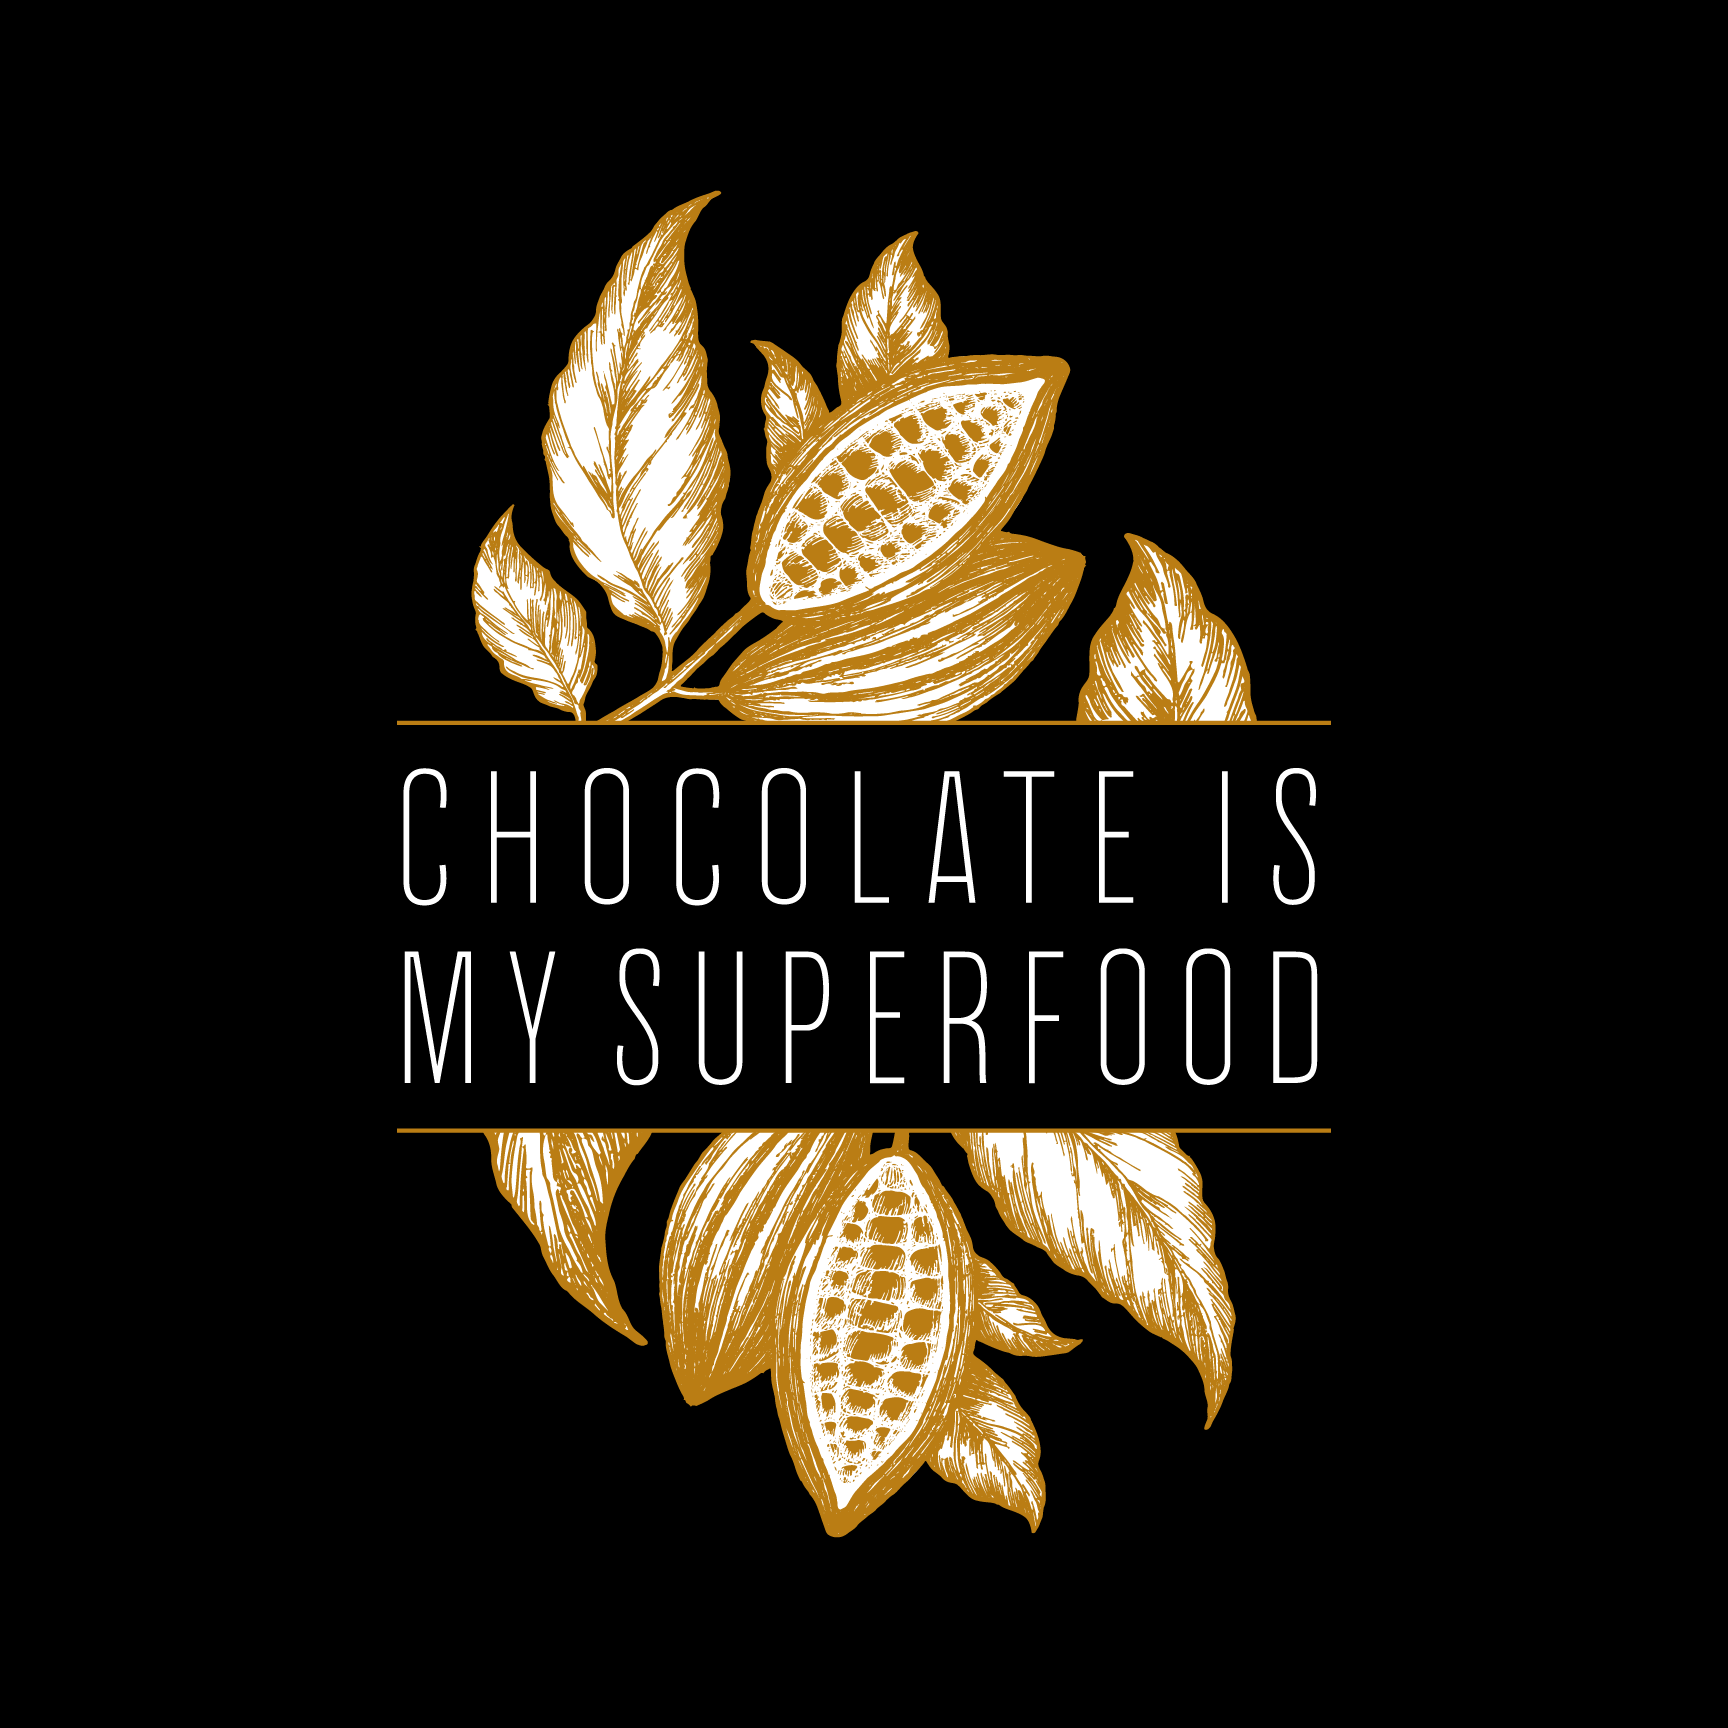 ChocolateSuperfood_promo.png